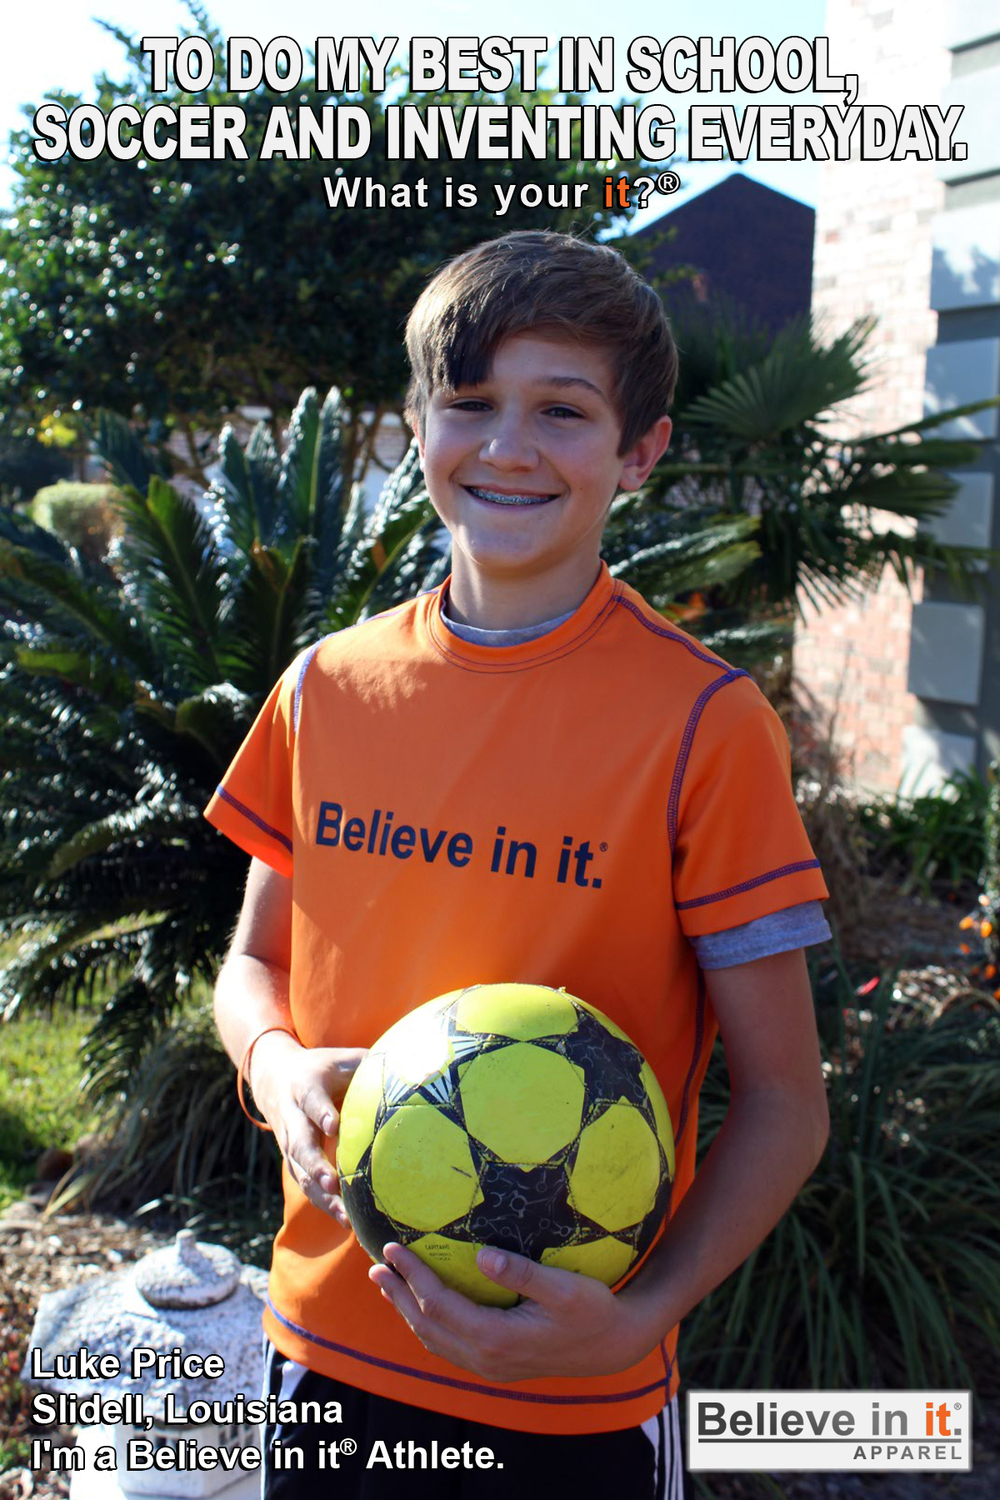 Luke Price Believe in it Athlete